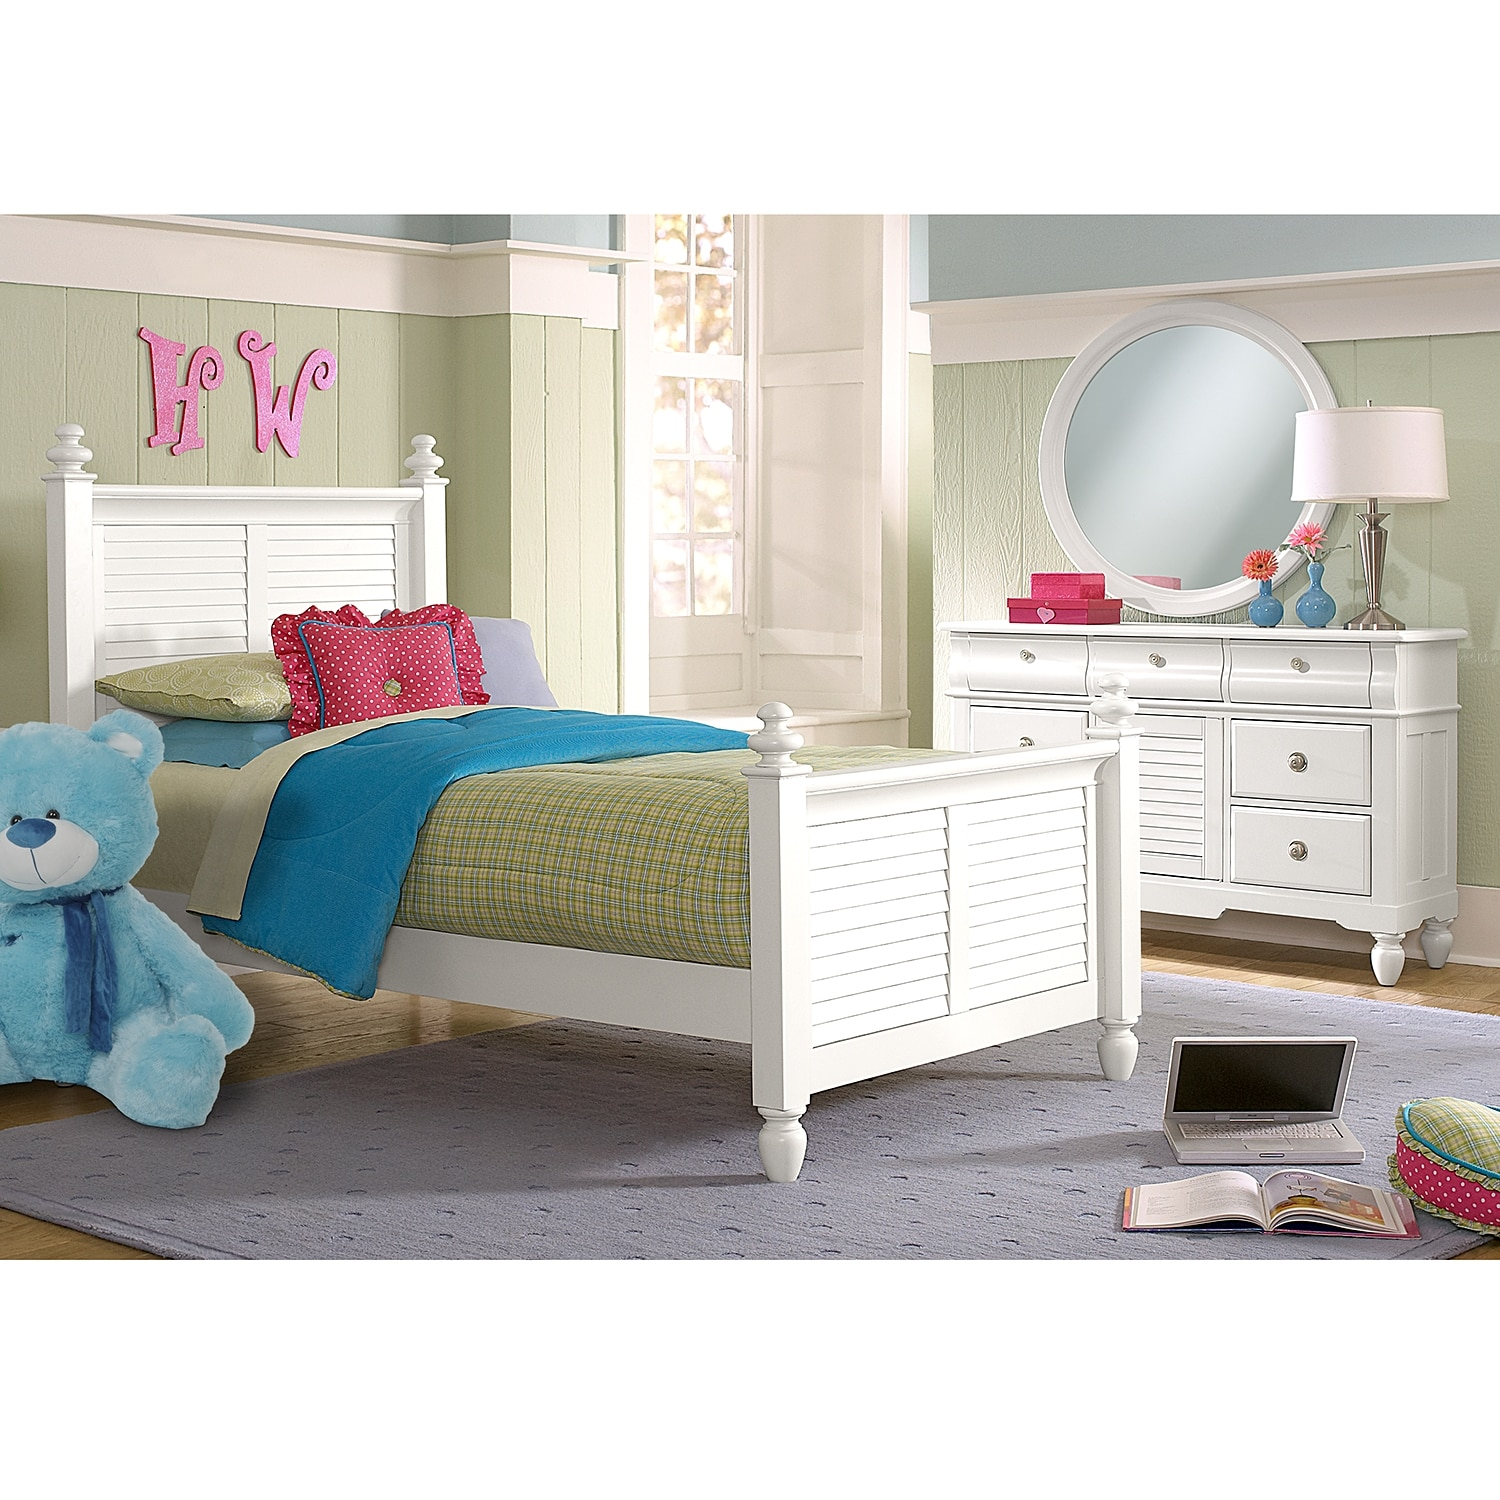 shop 5 piece bedroom sets american signature furniture 14008 | 277663 fit inside 7c320 320 composite to center center 7c320 320 background color white